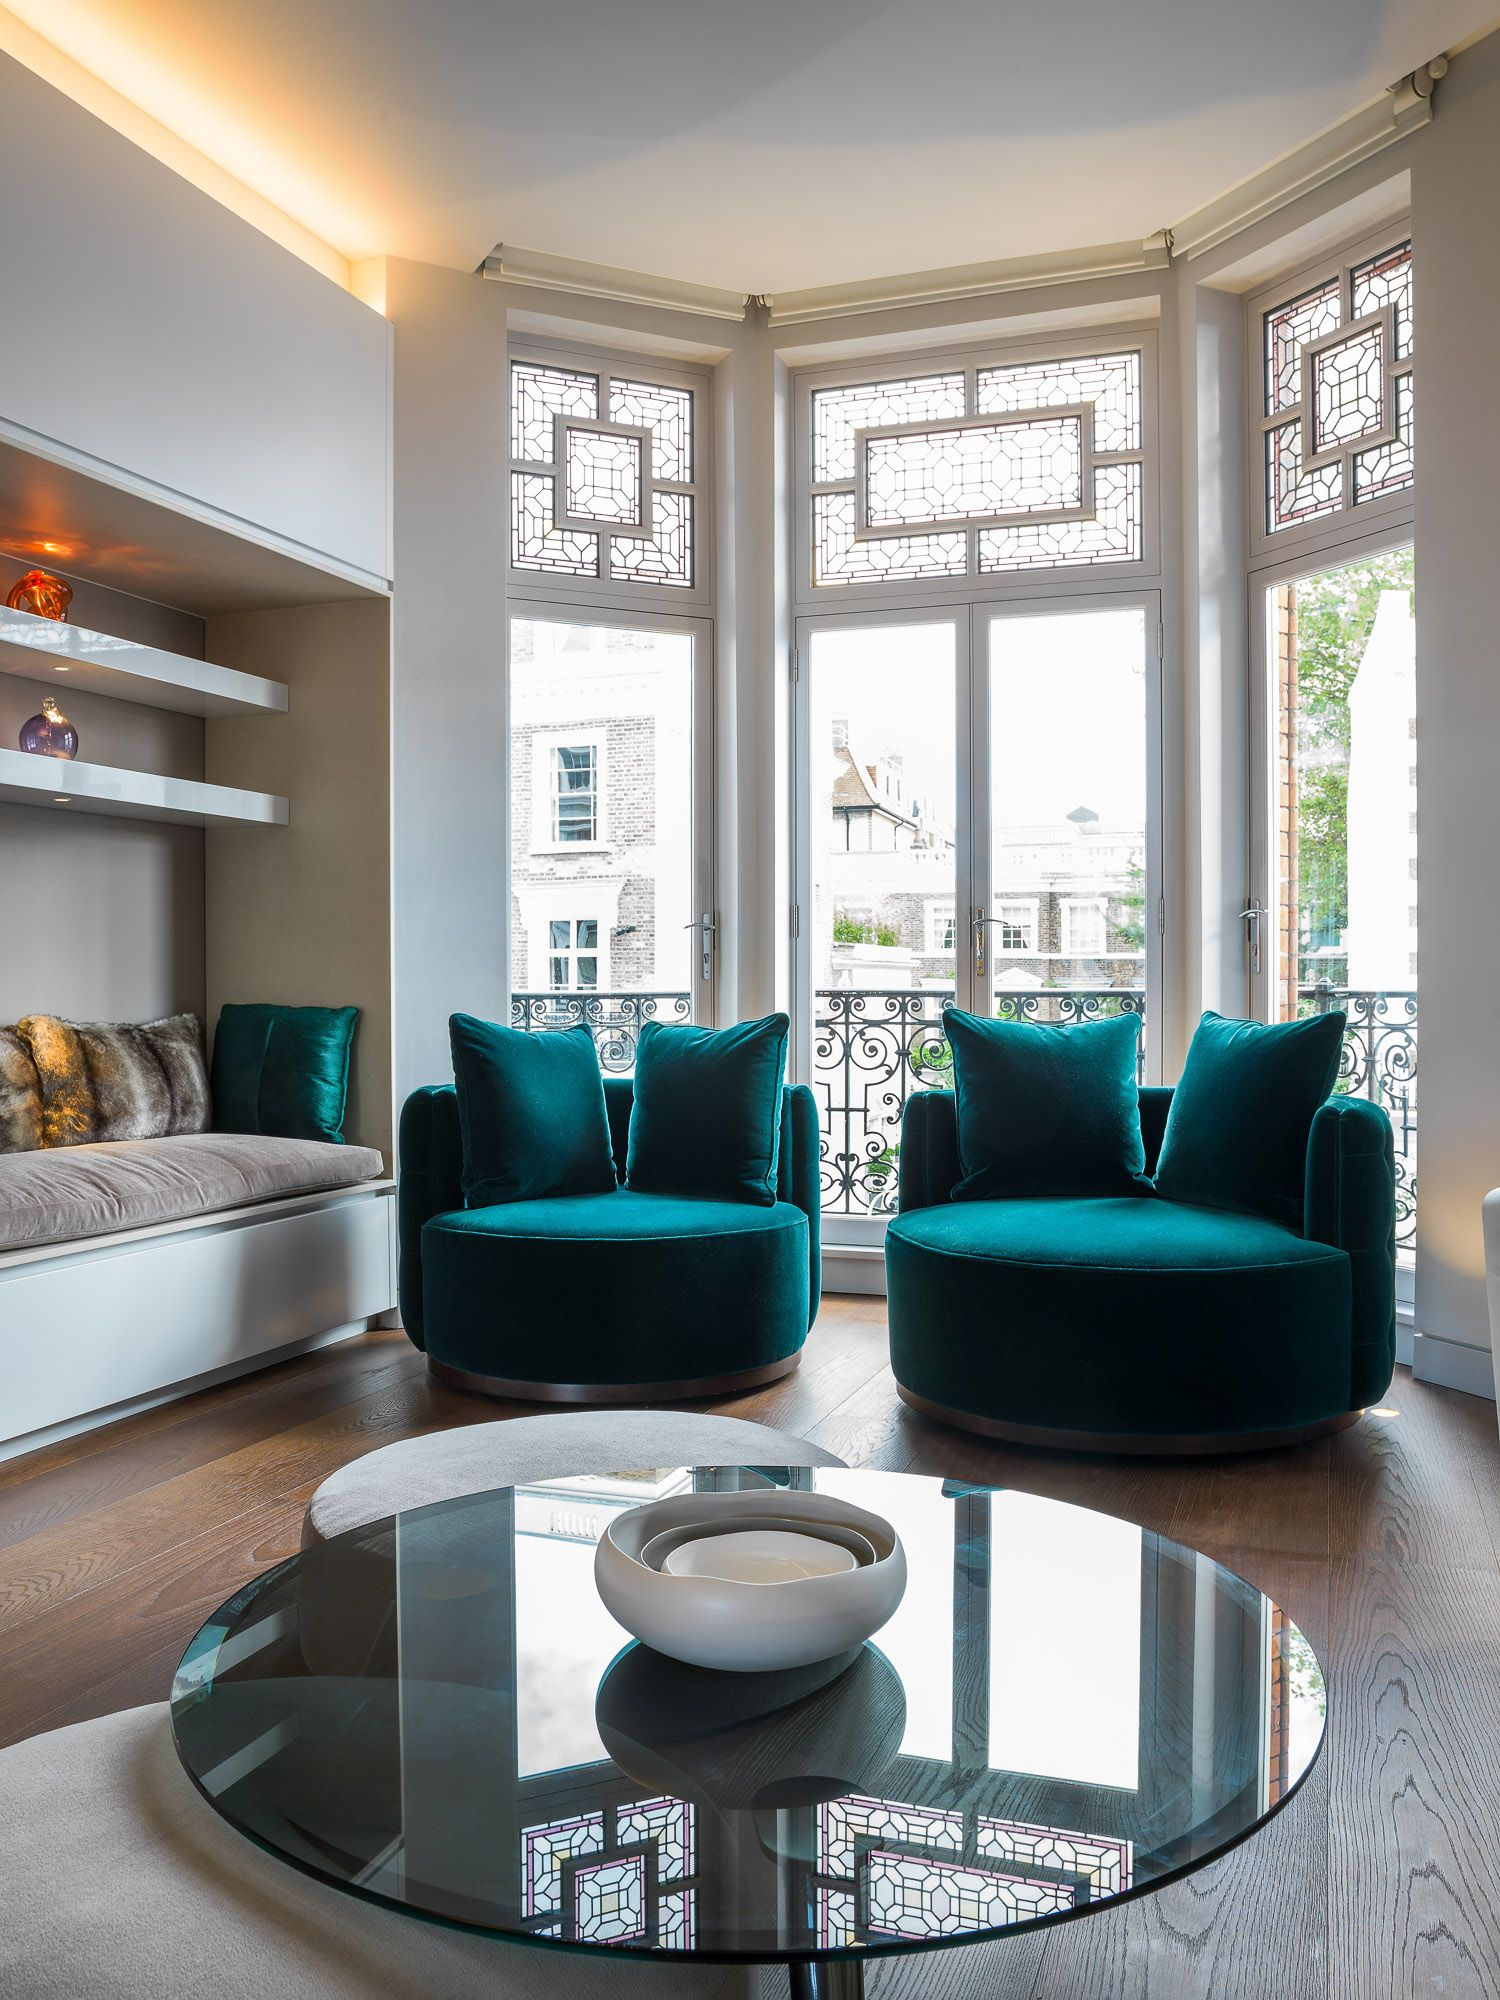 10 Best Teal Sofa Living Room Decor